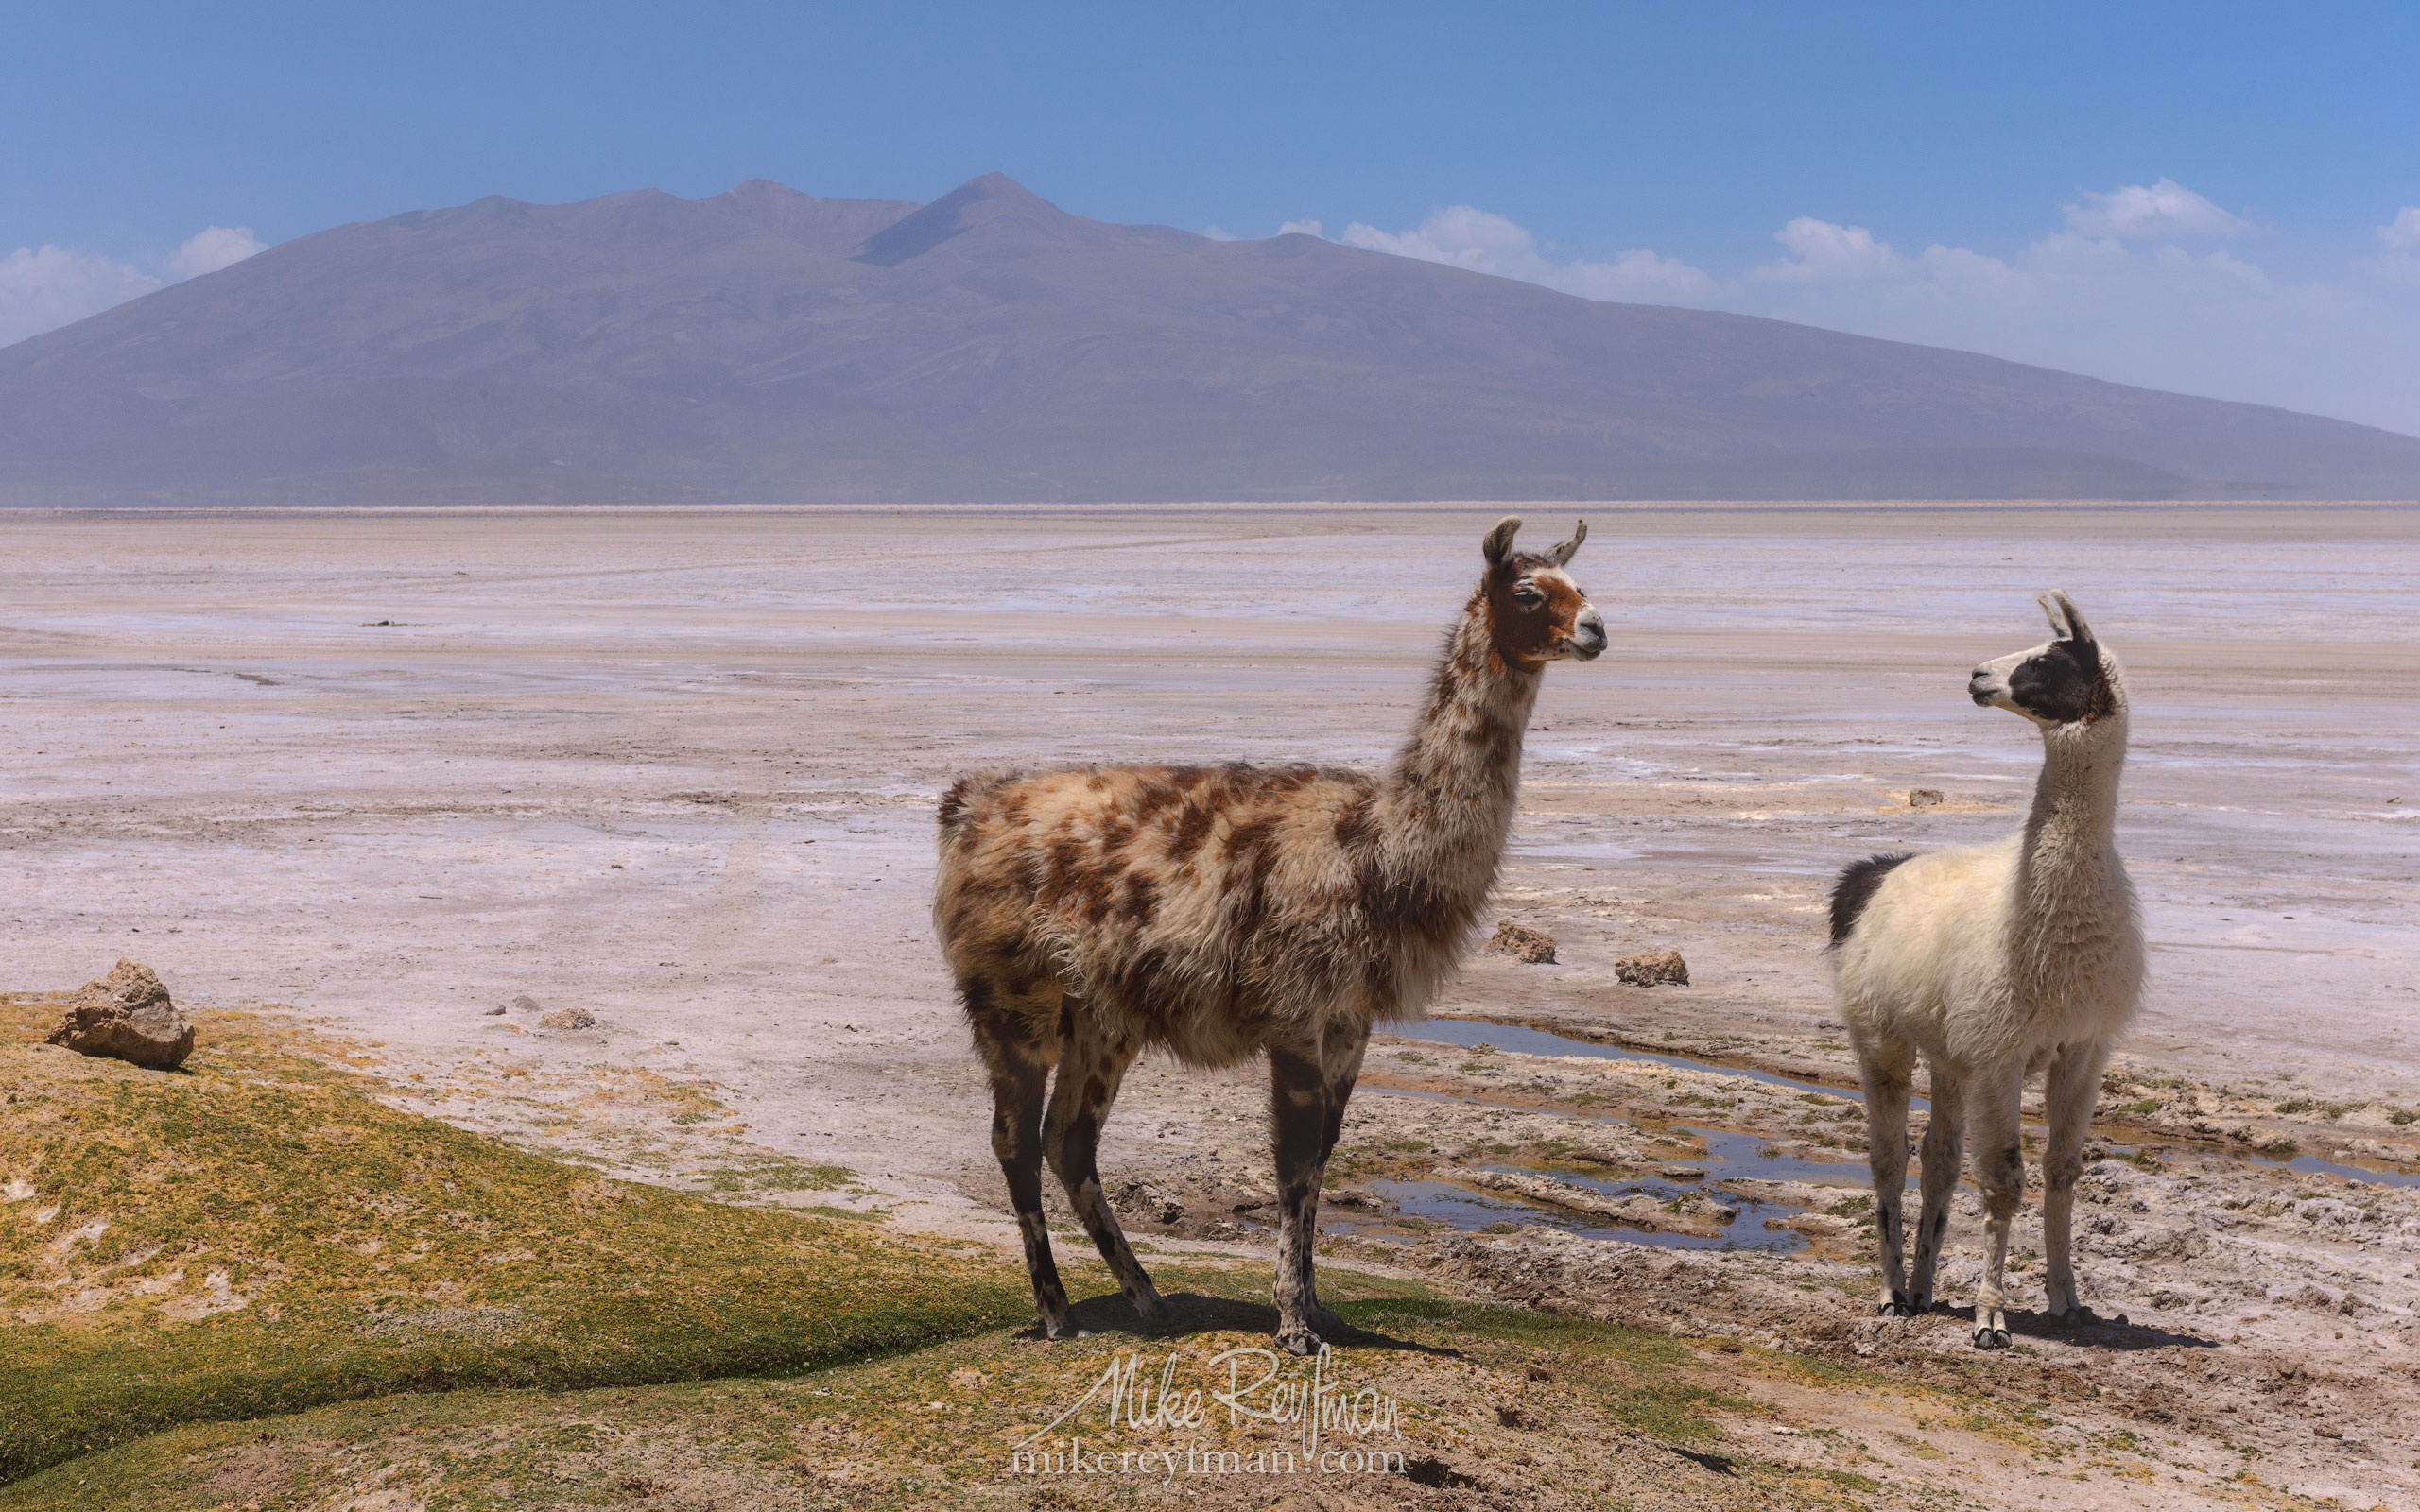 Member of the Camelid, the Llama, is the national animal of Bolivia. Altiplano, Bolivia. AA1-AIR2502 - Atacama and Altiplano. The Driest Desert and The High Plain - Mike Reyfman Photography